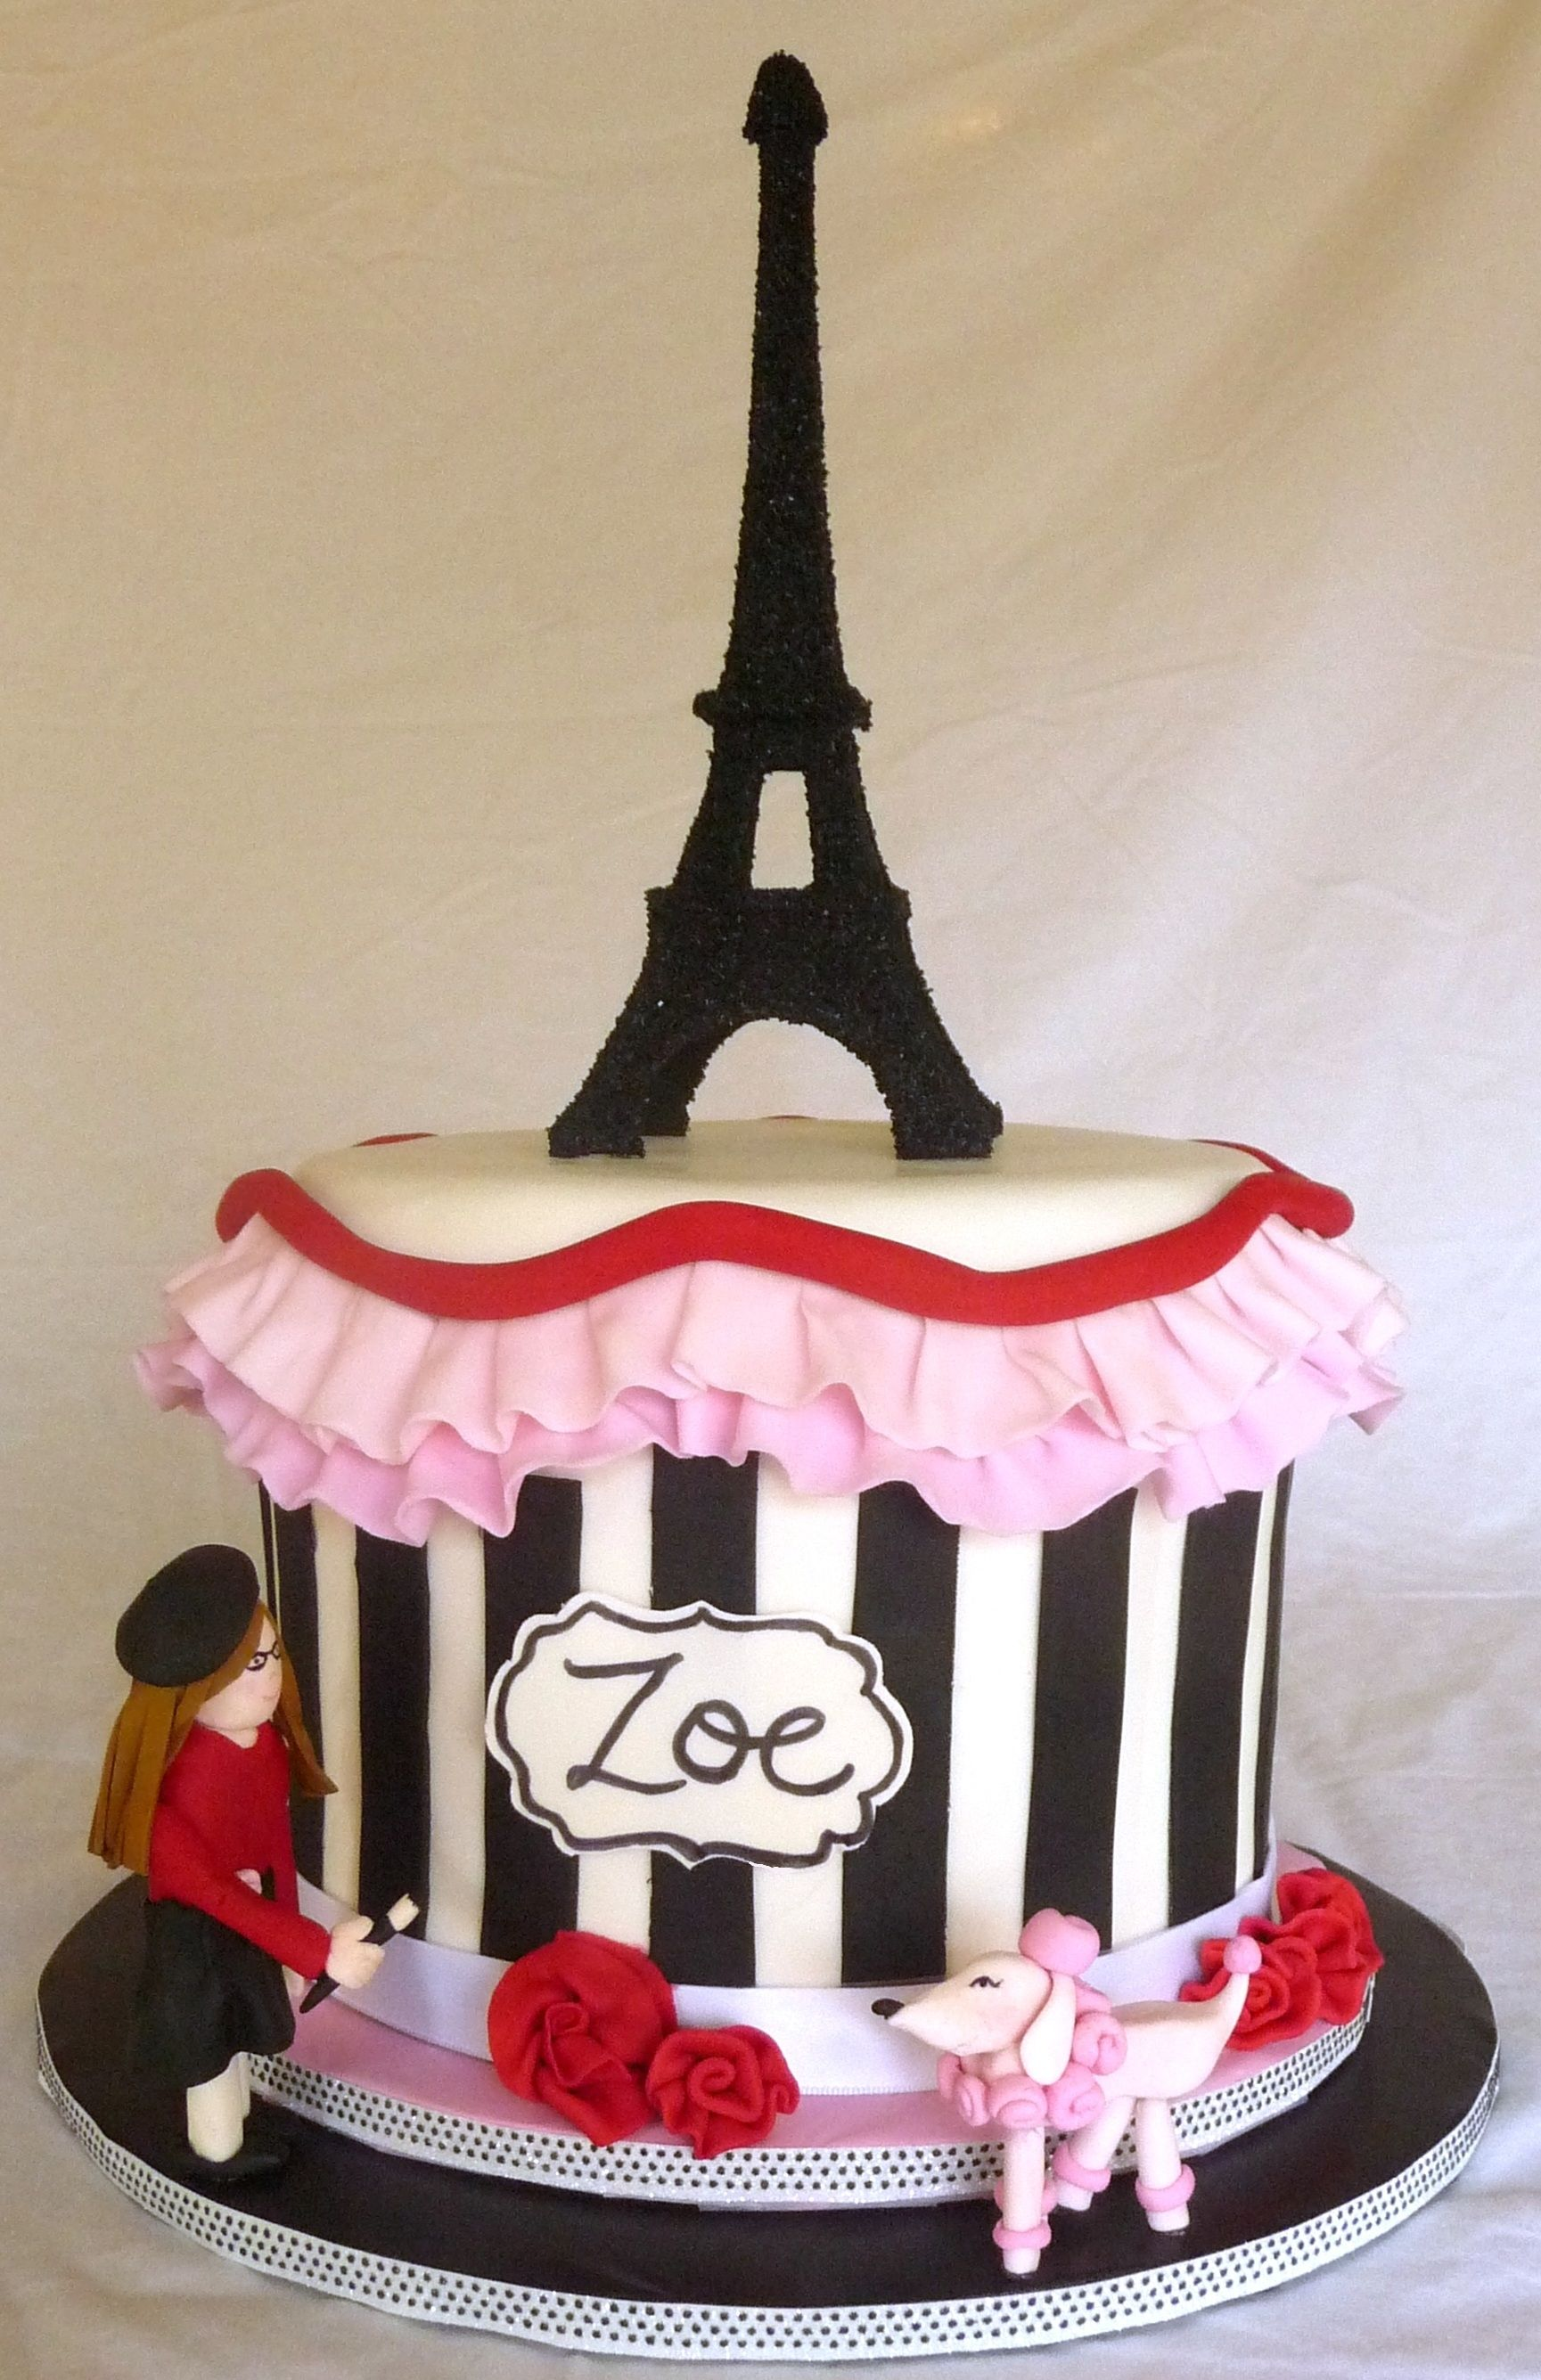 Paris Themed Cake This Cake Was Made For An 11 Year Old